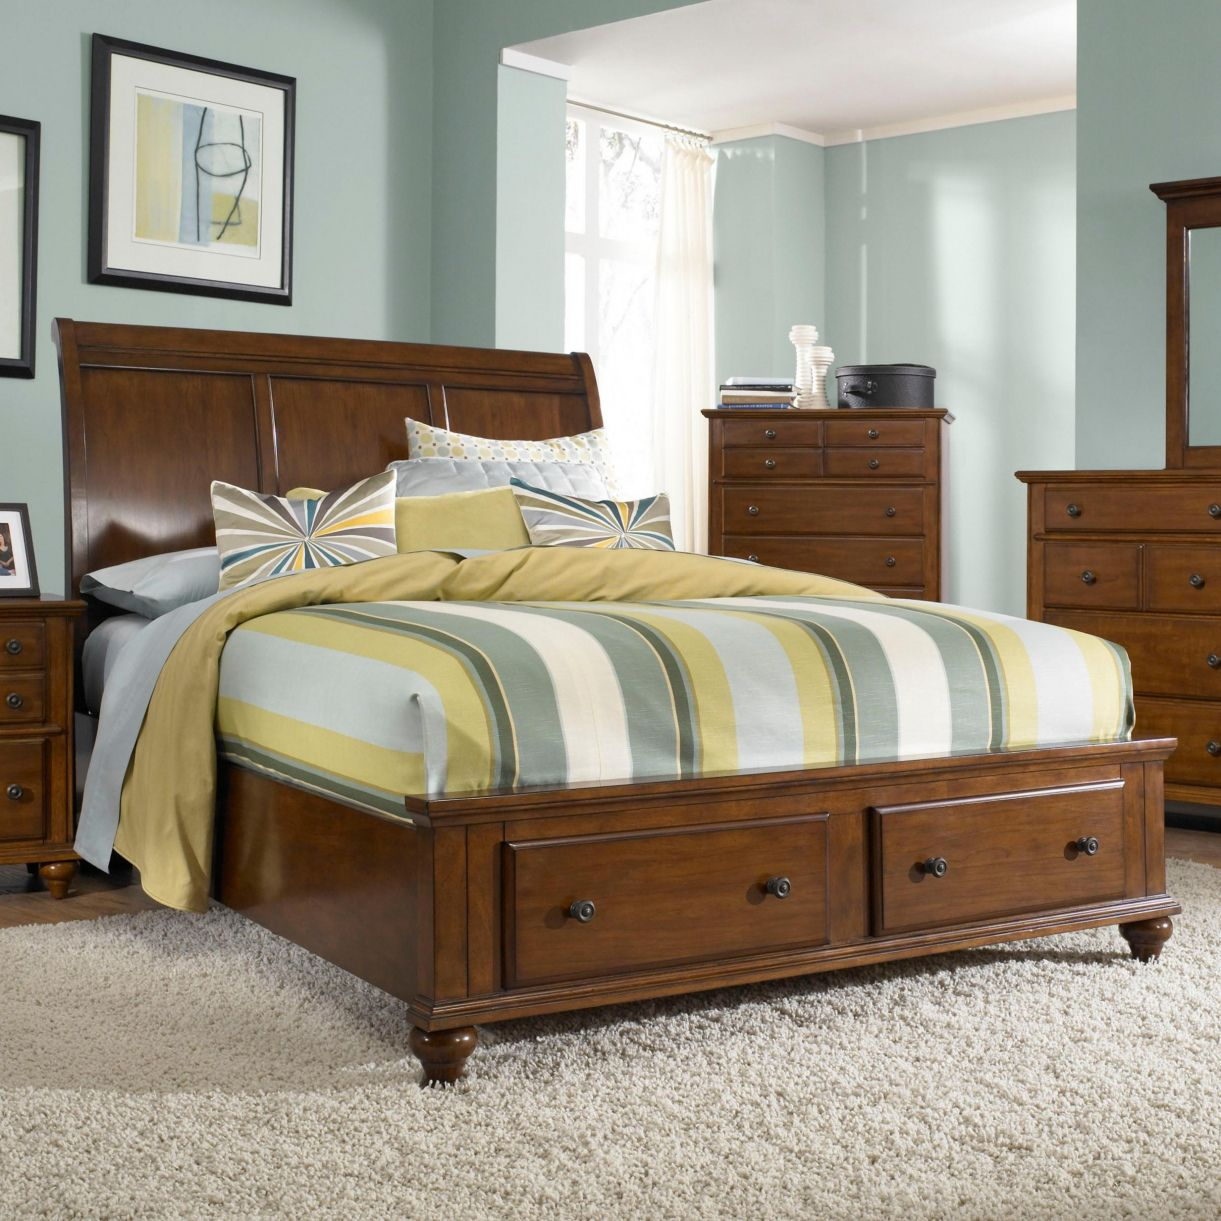 Elegant Raymour Flanigan Bedroom Furniture   Cool Storage Furniture Check More At  Http://searchfororangecountyhomes